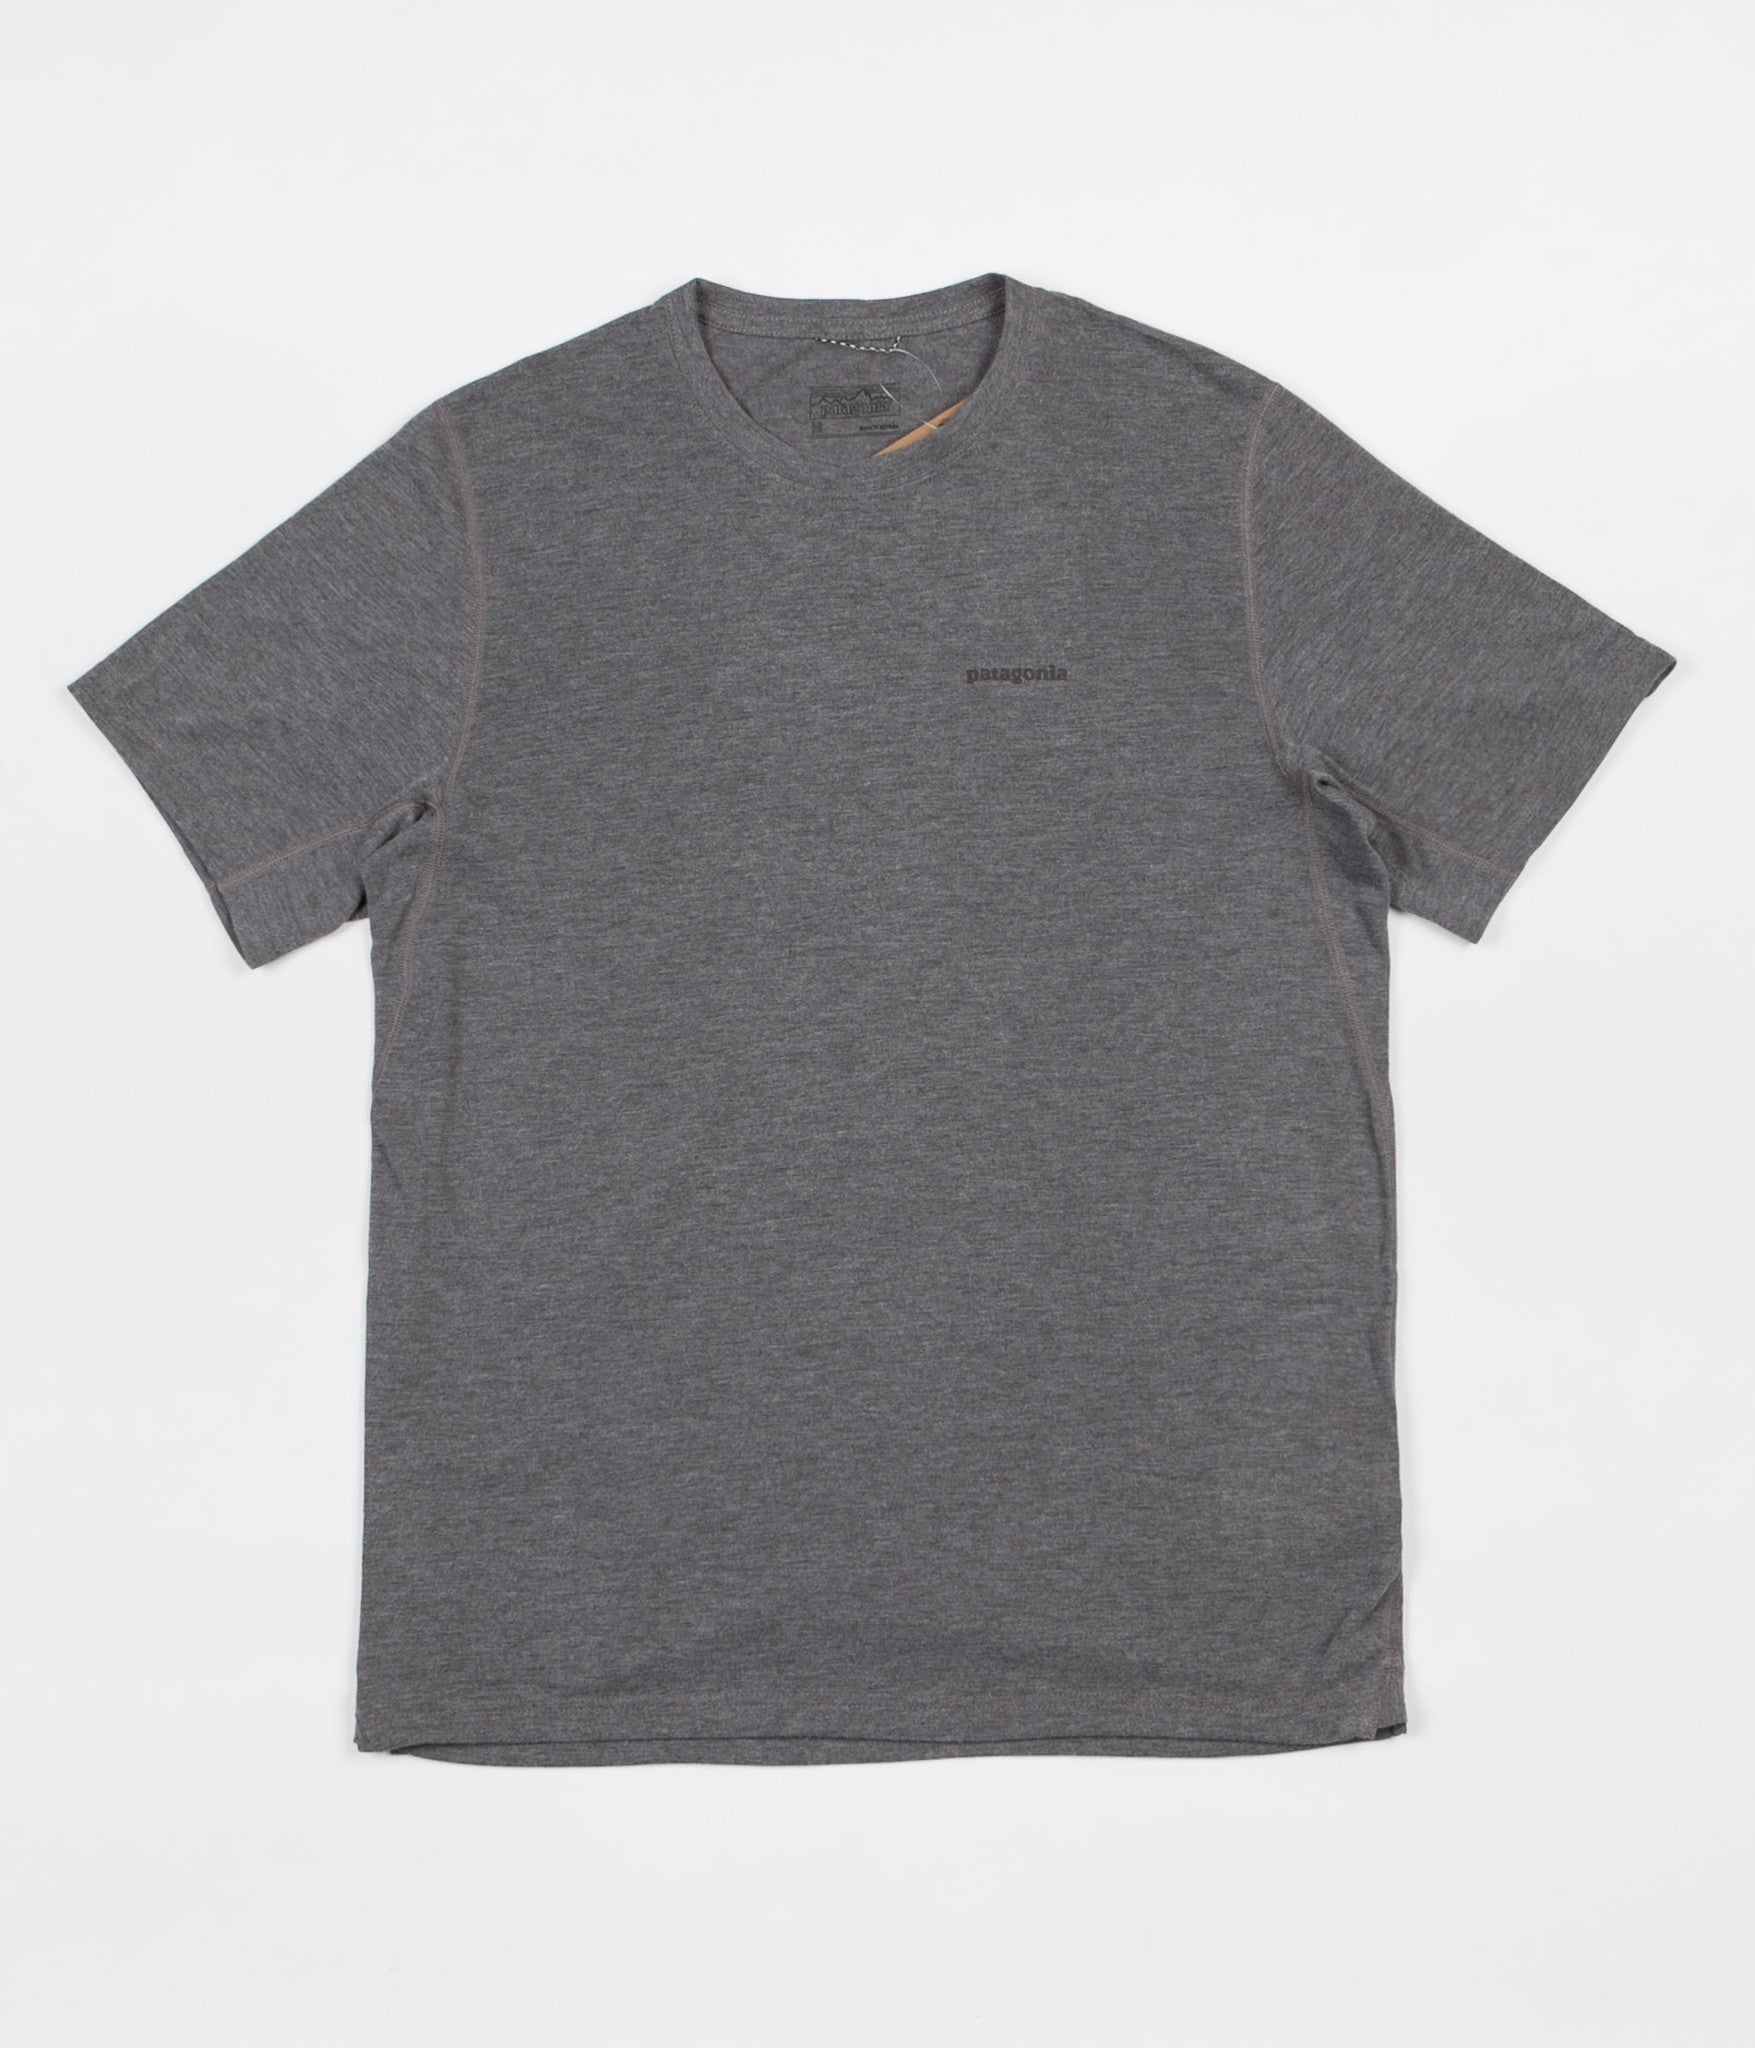 Patagonia Nine Trails Shirt - Black